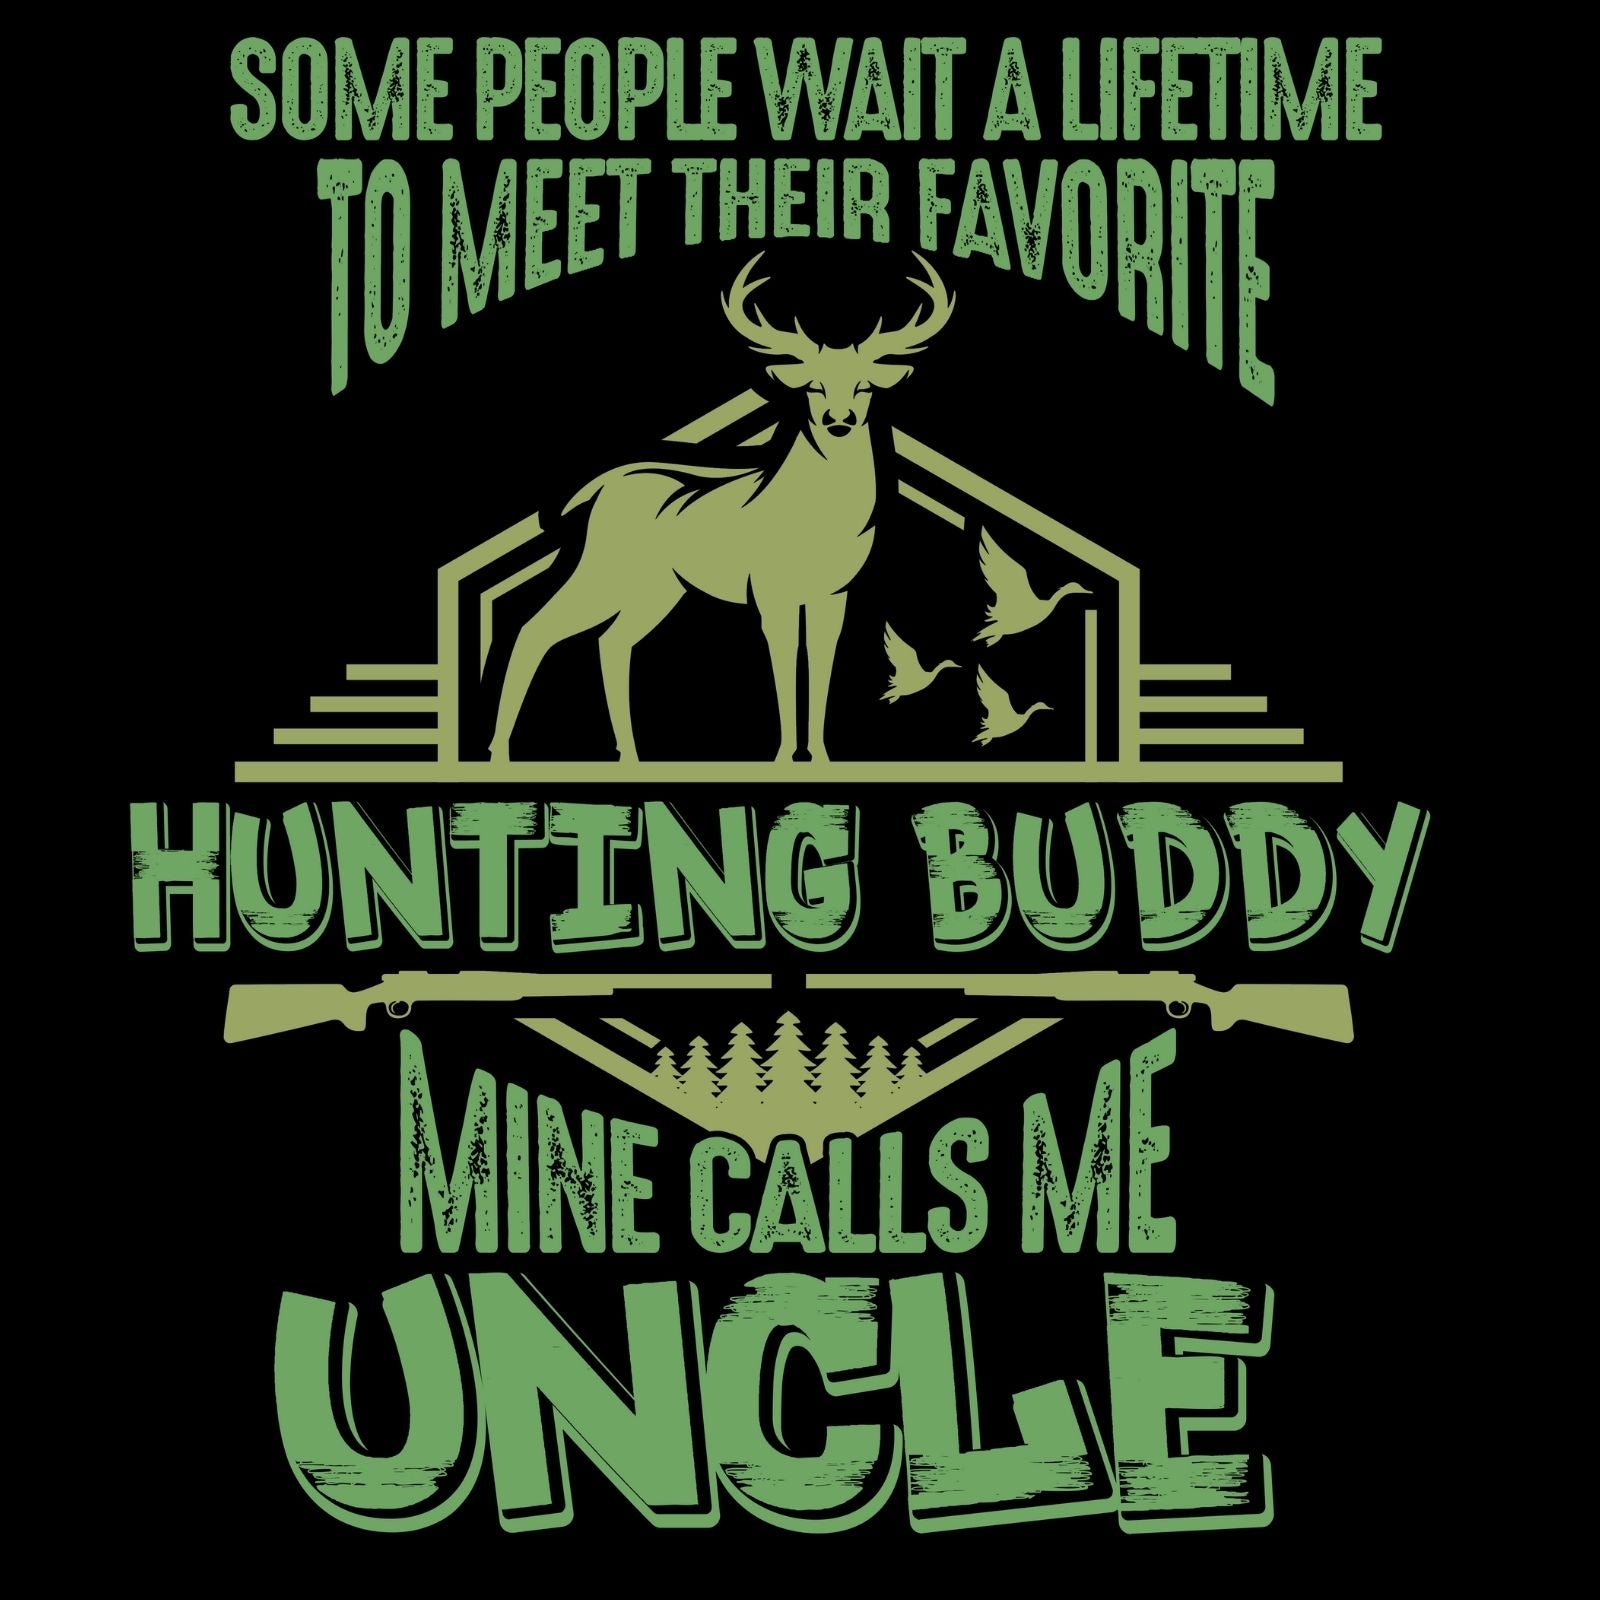 Some People Wait A Lifetime To Meet Their Favorite Hunting Buddy Mine Calls Me UNCLE - Bastard Graphics